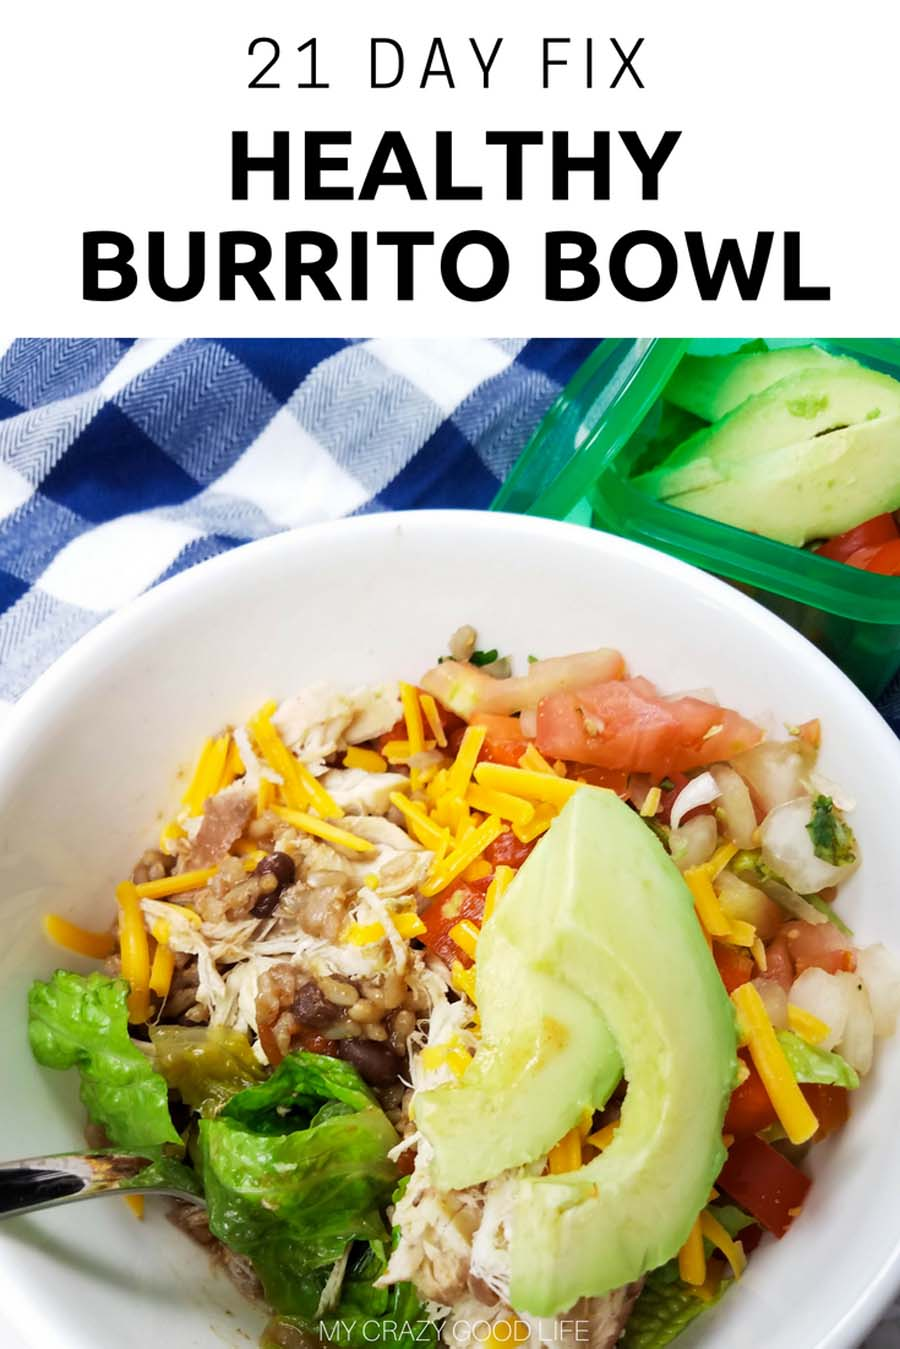 This 21 Day Fix Burrito Bowl recipe is prefect for meal prep day! Cook this Instant Pot Burrito Bowl recipe once and eat all week long! | Weight Watchers Dinner Recipes | Weight Watchers Burrito Bowls | 21 Day Fix Dinner Recipe #instantpot #pressurecooker #IPcooking #pressurecooking #21dayfix #beachbody #weightwatchers